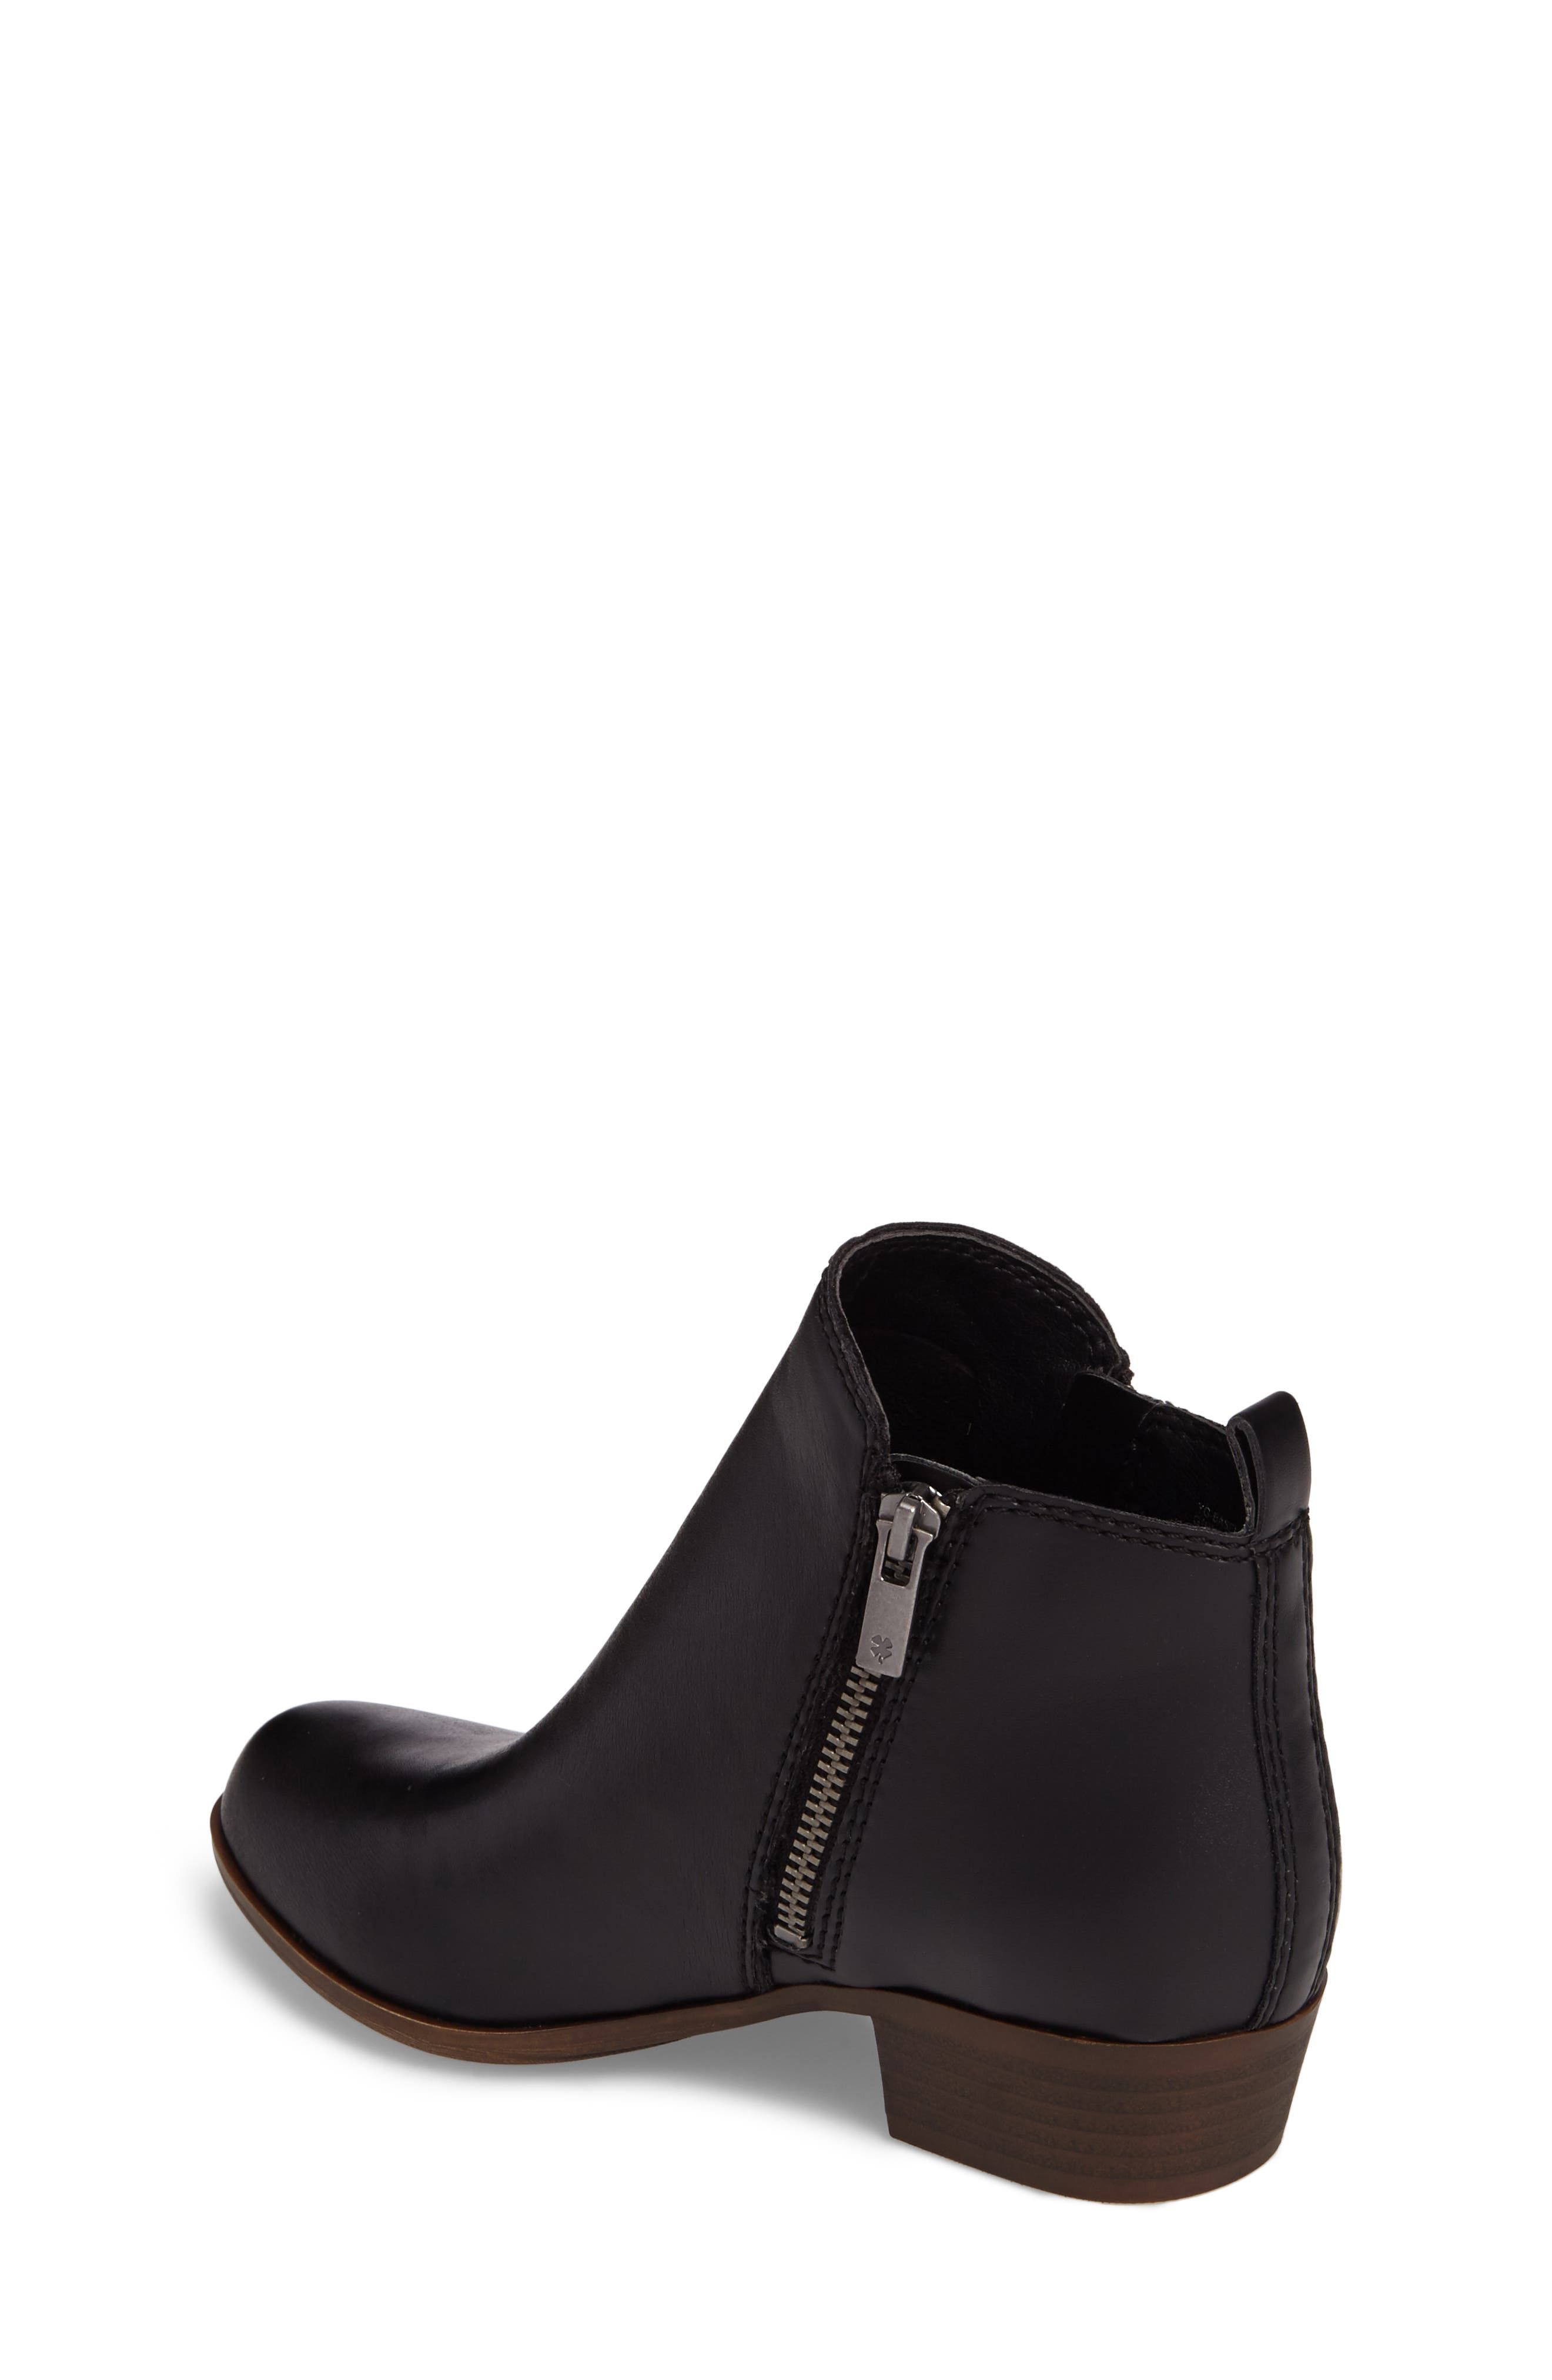 LUCKY BRAND, Basel Double-Zip Bootie, Alternate thumbnail 2, color, 001